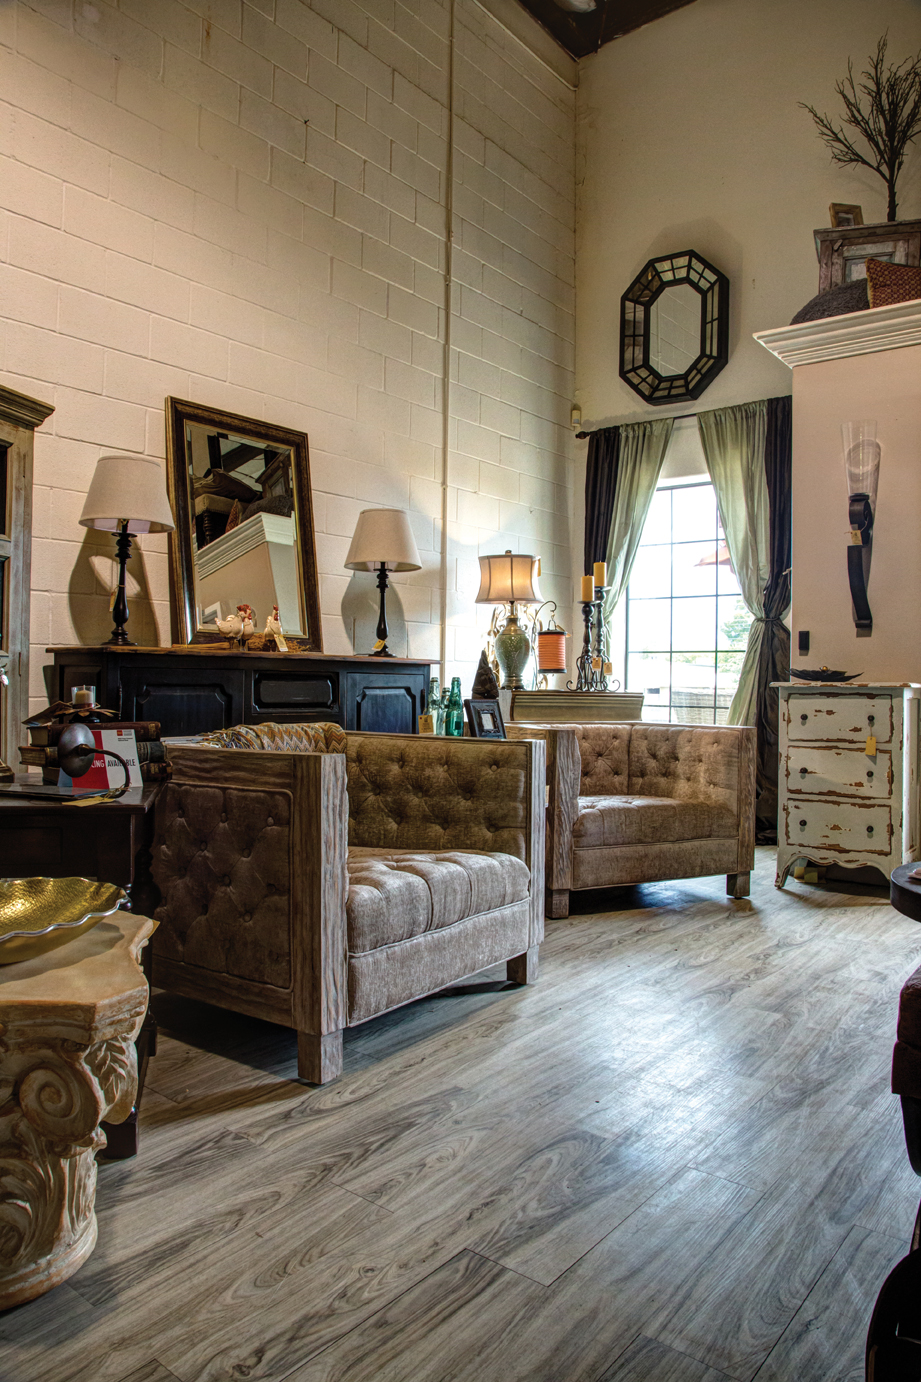 Pete markwardt 39 s a a home furnishings brings for International home decor magazines